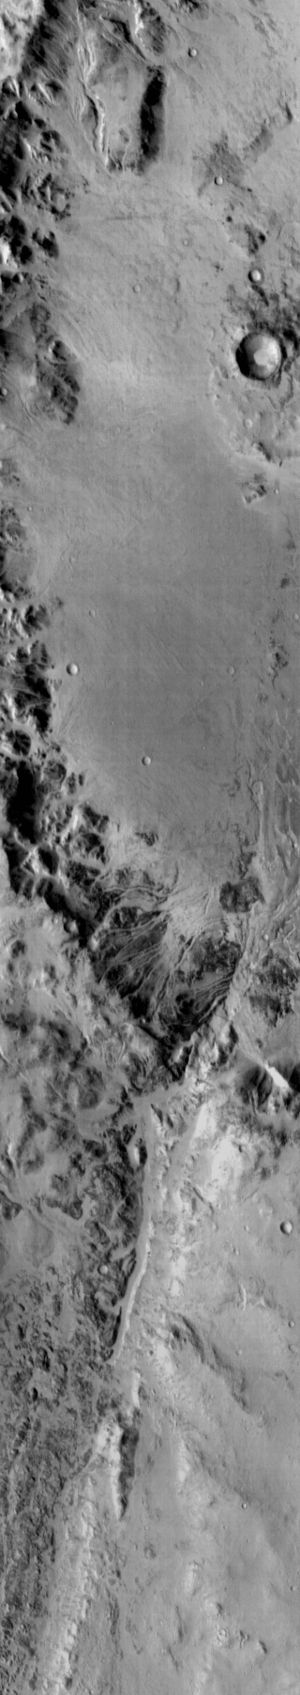 Holden (Martian crater) - Image: Holden Crater Rim